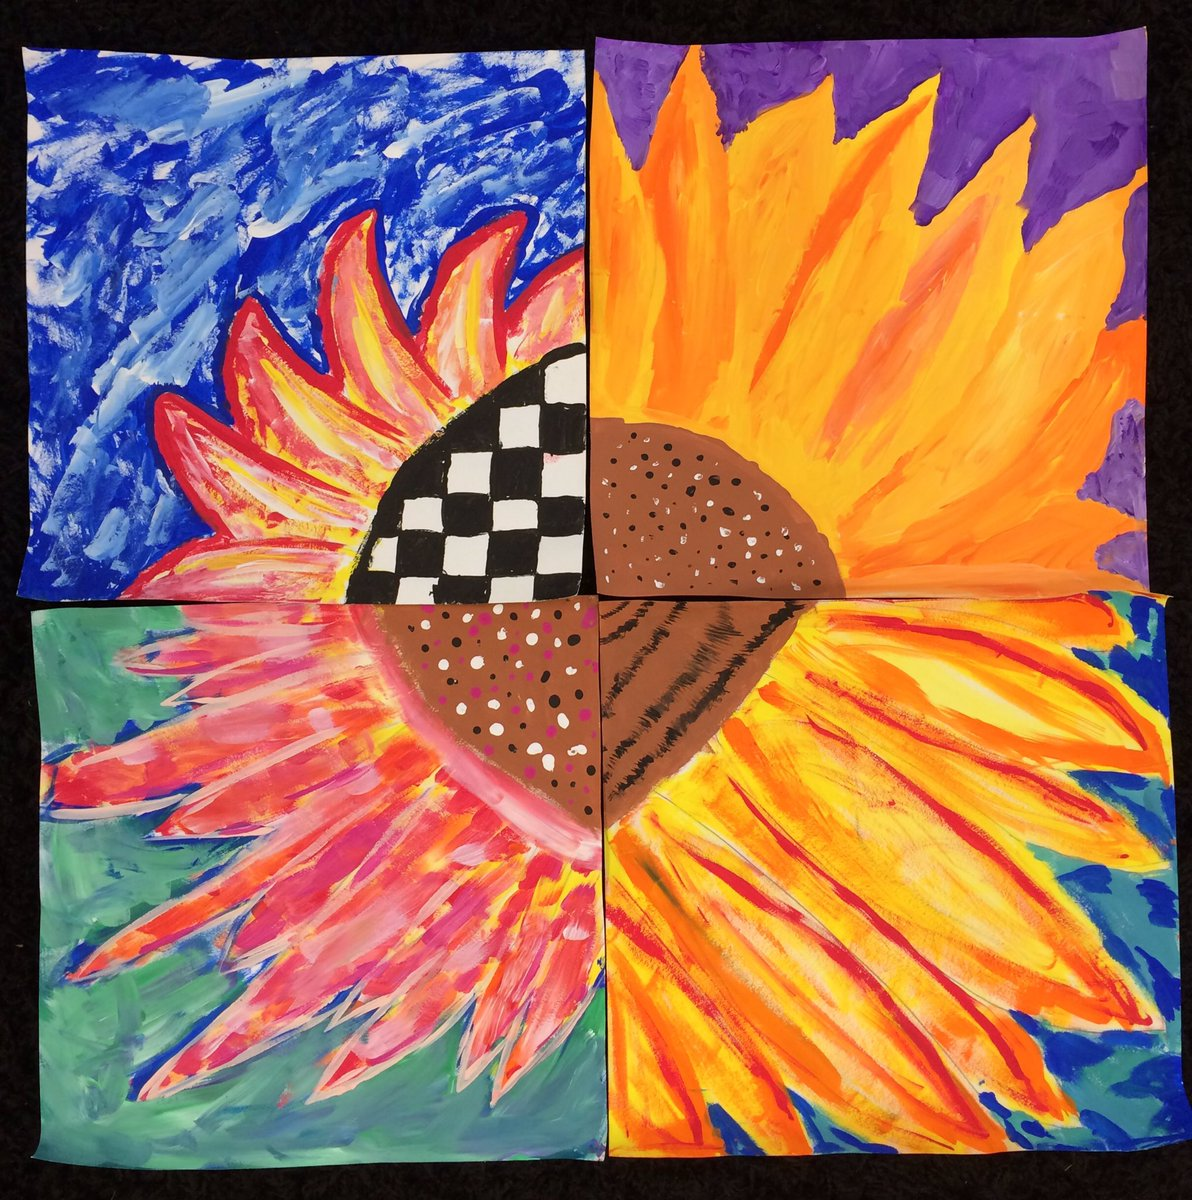 Totally in LOVE with our newest 3rd &amp; 4th grade Van Gogh inspired project. #vangogh #fractions #sunflowers #warmandcoolcolors  @BryantElem<br>http://pic.twitter.com/t7wIE9emVw